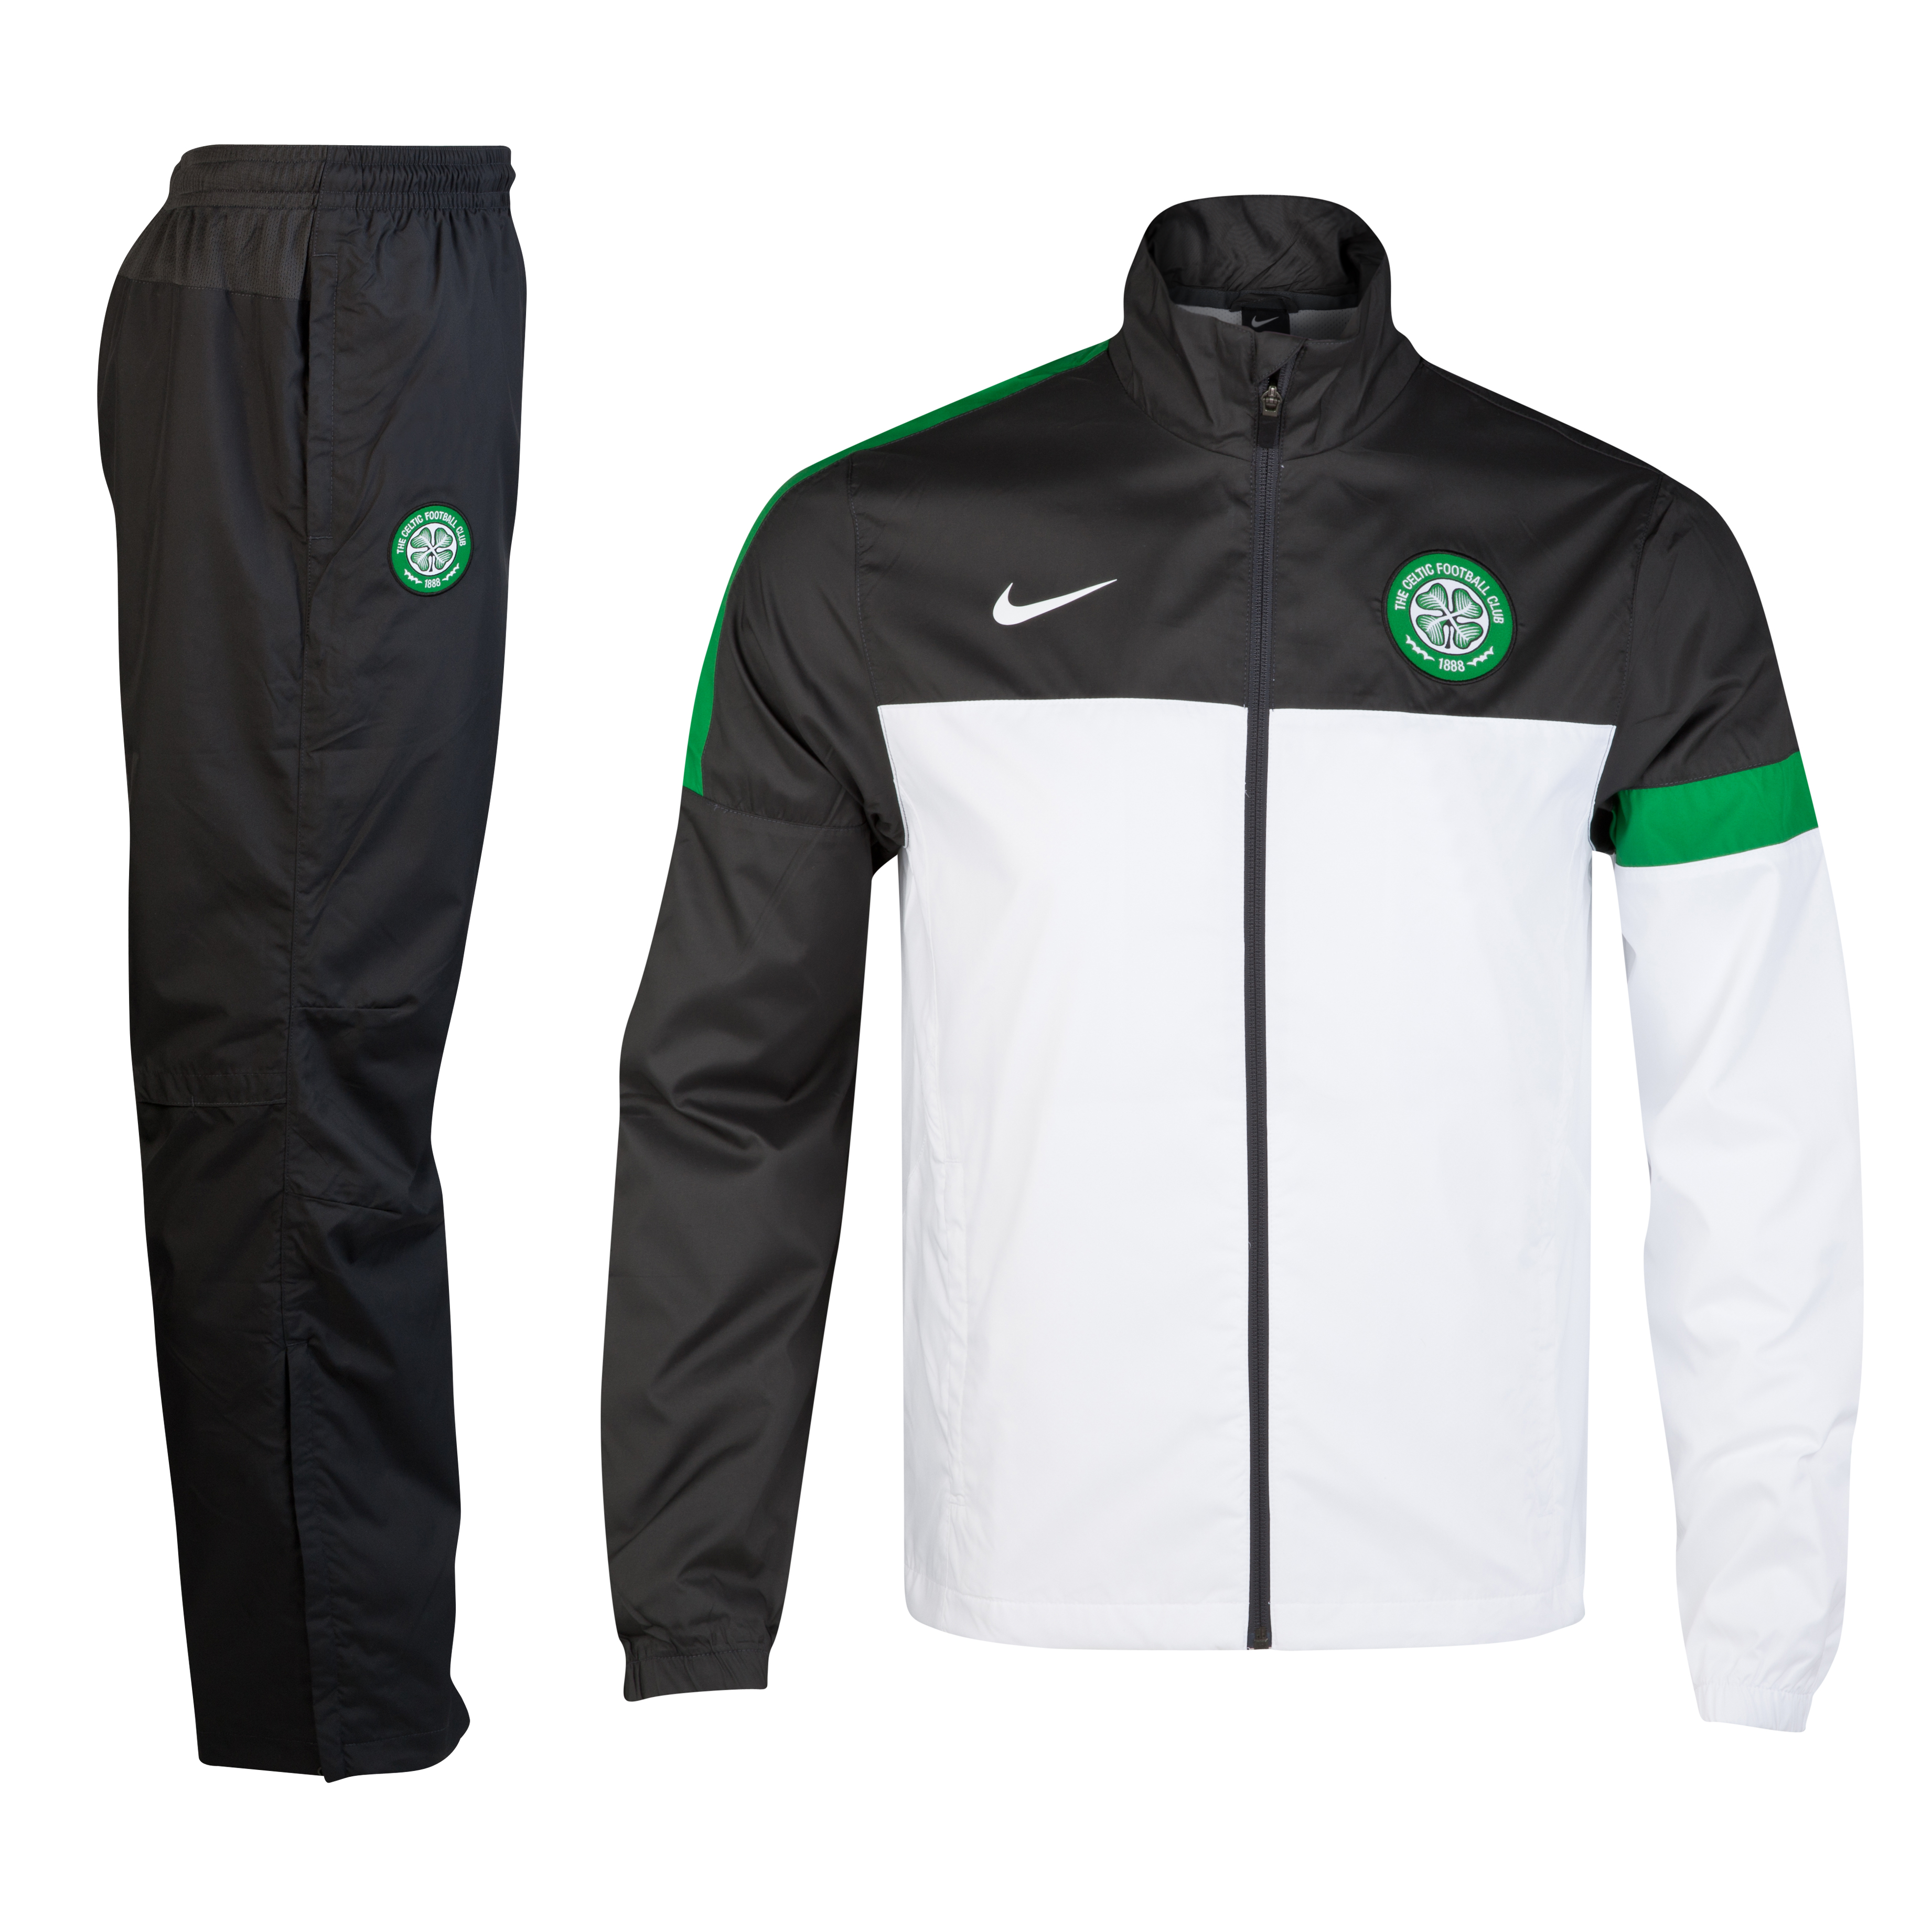 Celtic Sideline Woven Warm Up Tracksuit - White/Anthracite/Victory Green/White - Youths